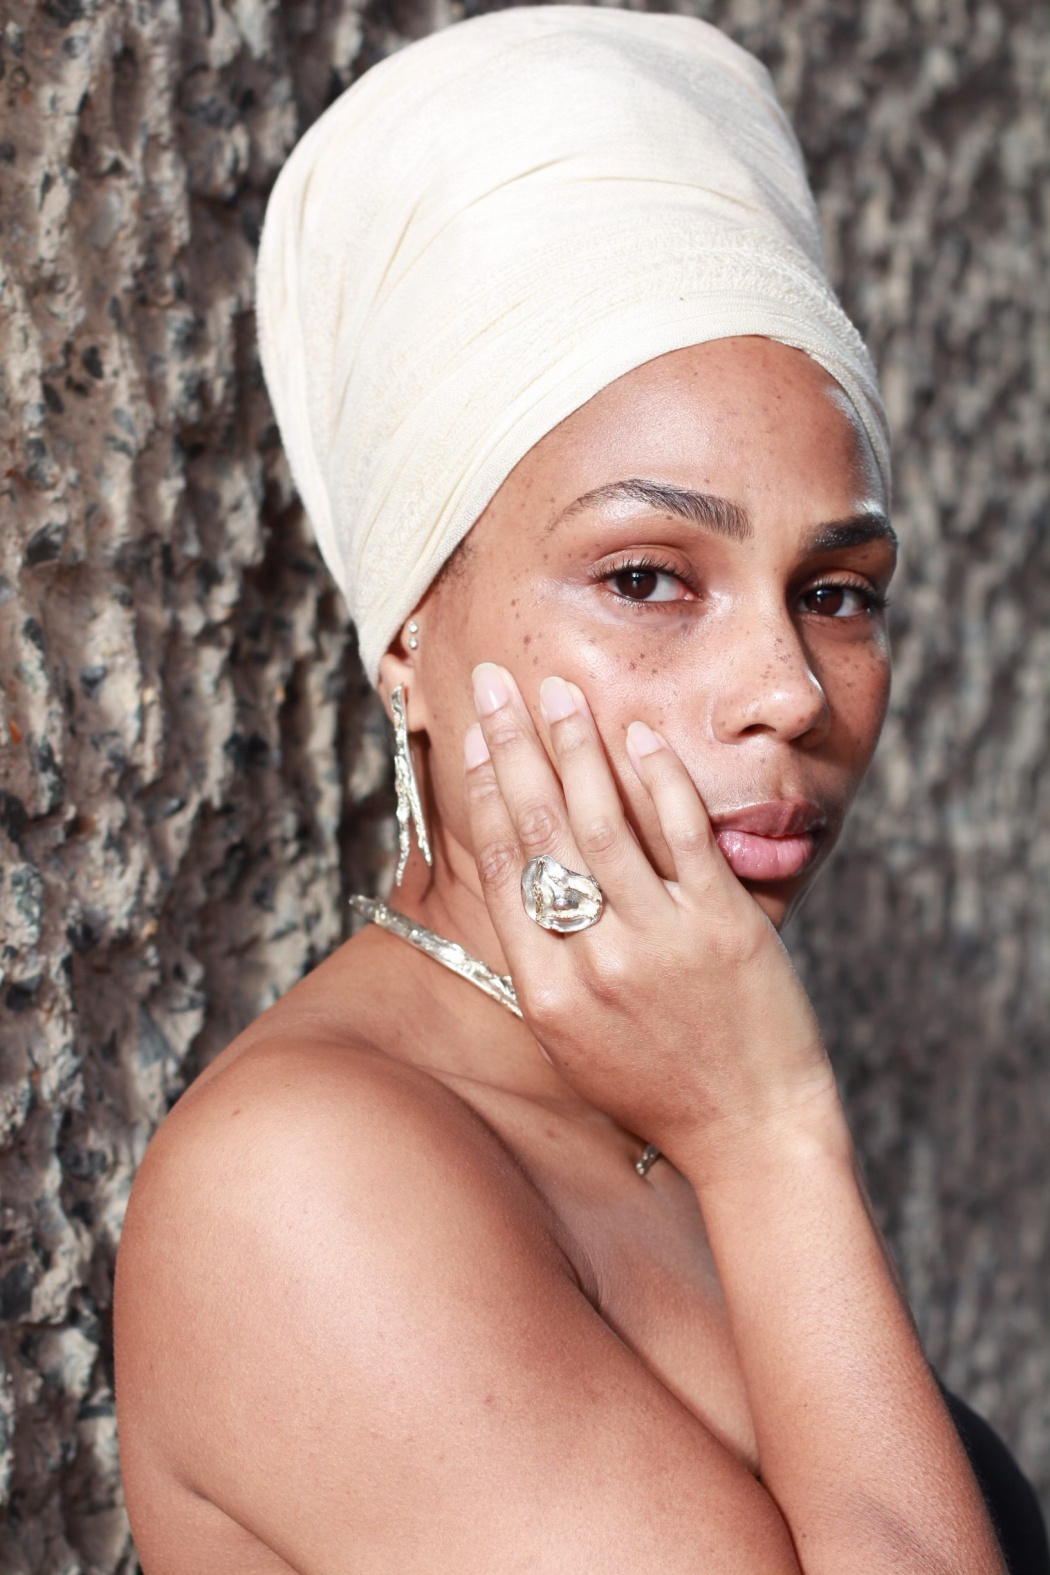 Lanaiya Lithe Head Wrap Jewellery Modelling 4